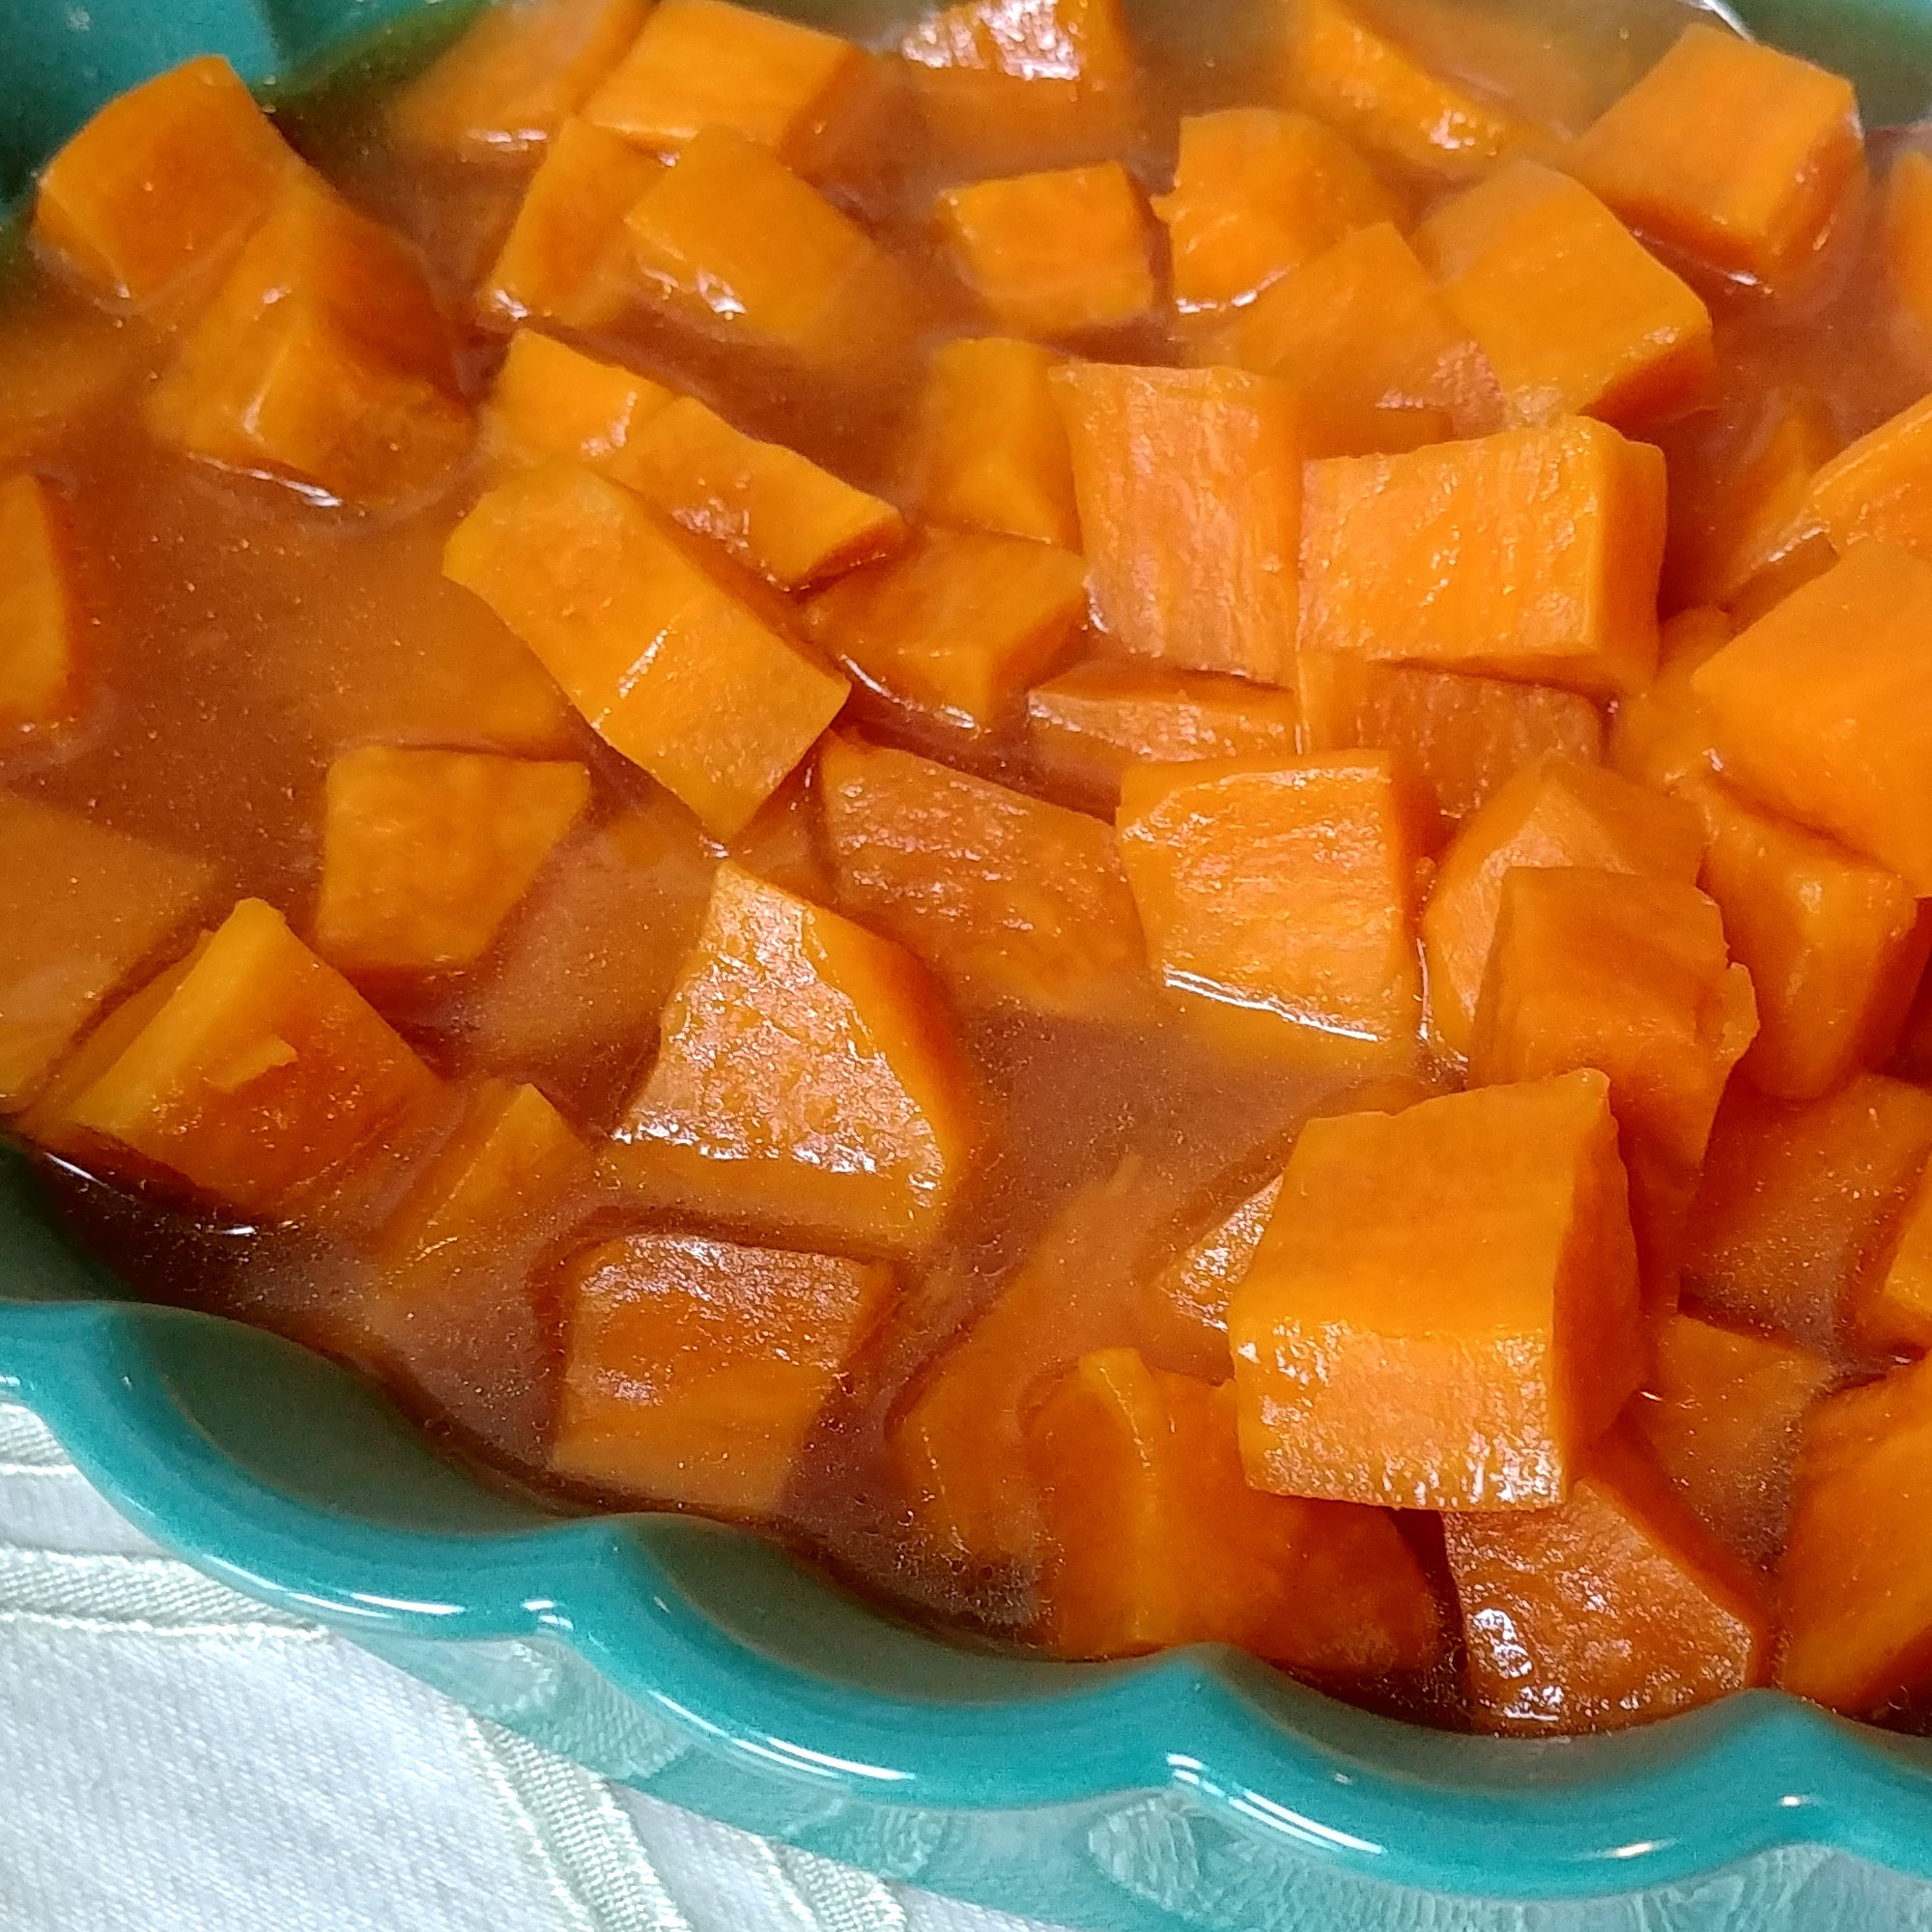 candied sweet potatoes in turquoise bowl